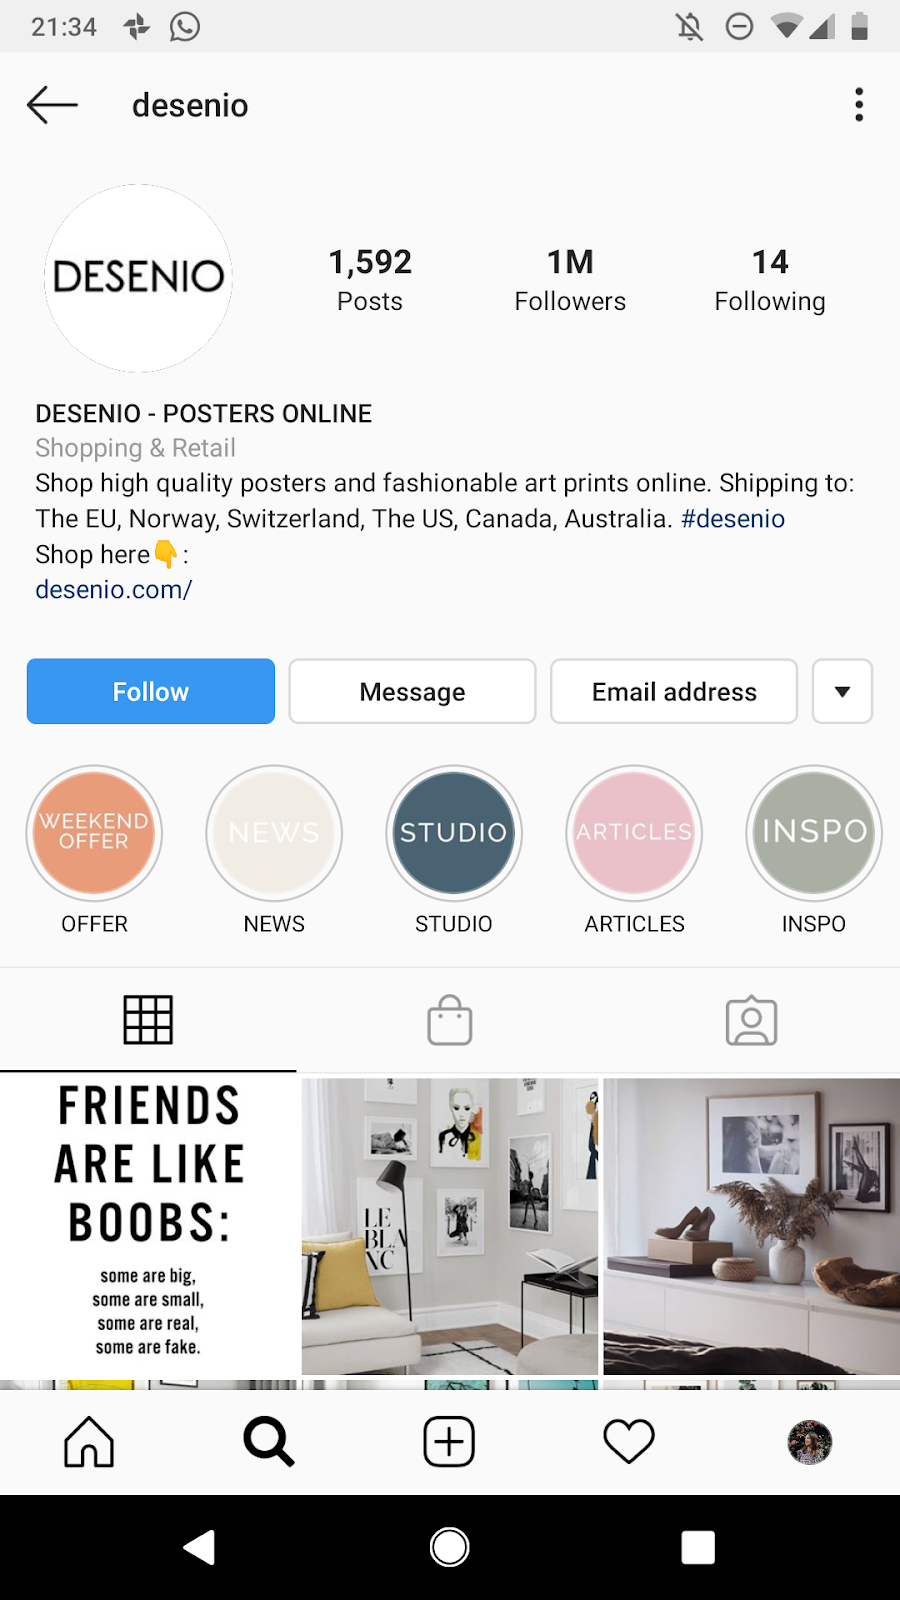 Instagram Content Calendar 20 Tips to Plan Your Feed Ahead of Time